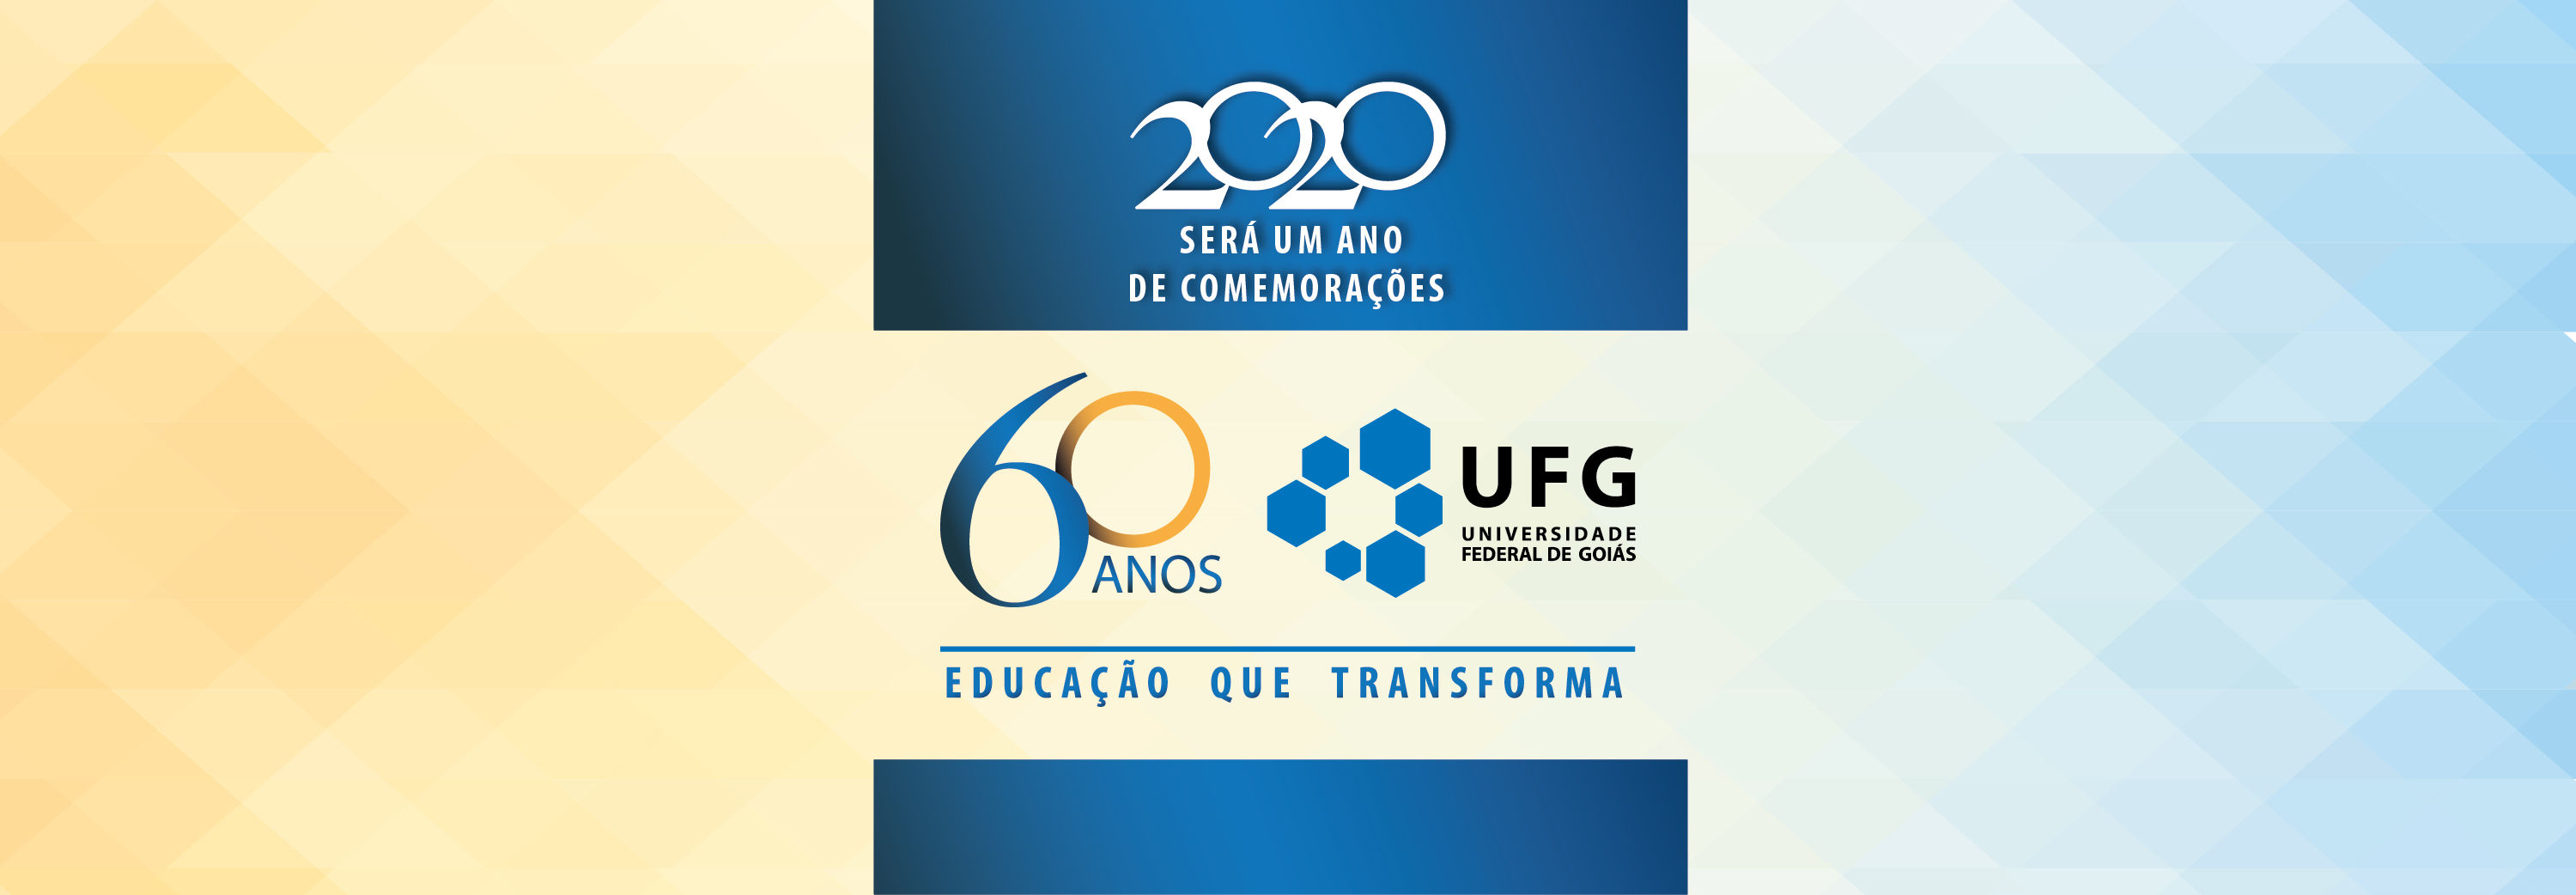 Banners-site-60anos (1).jpg